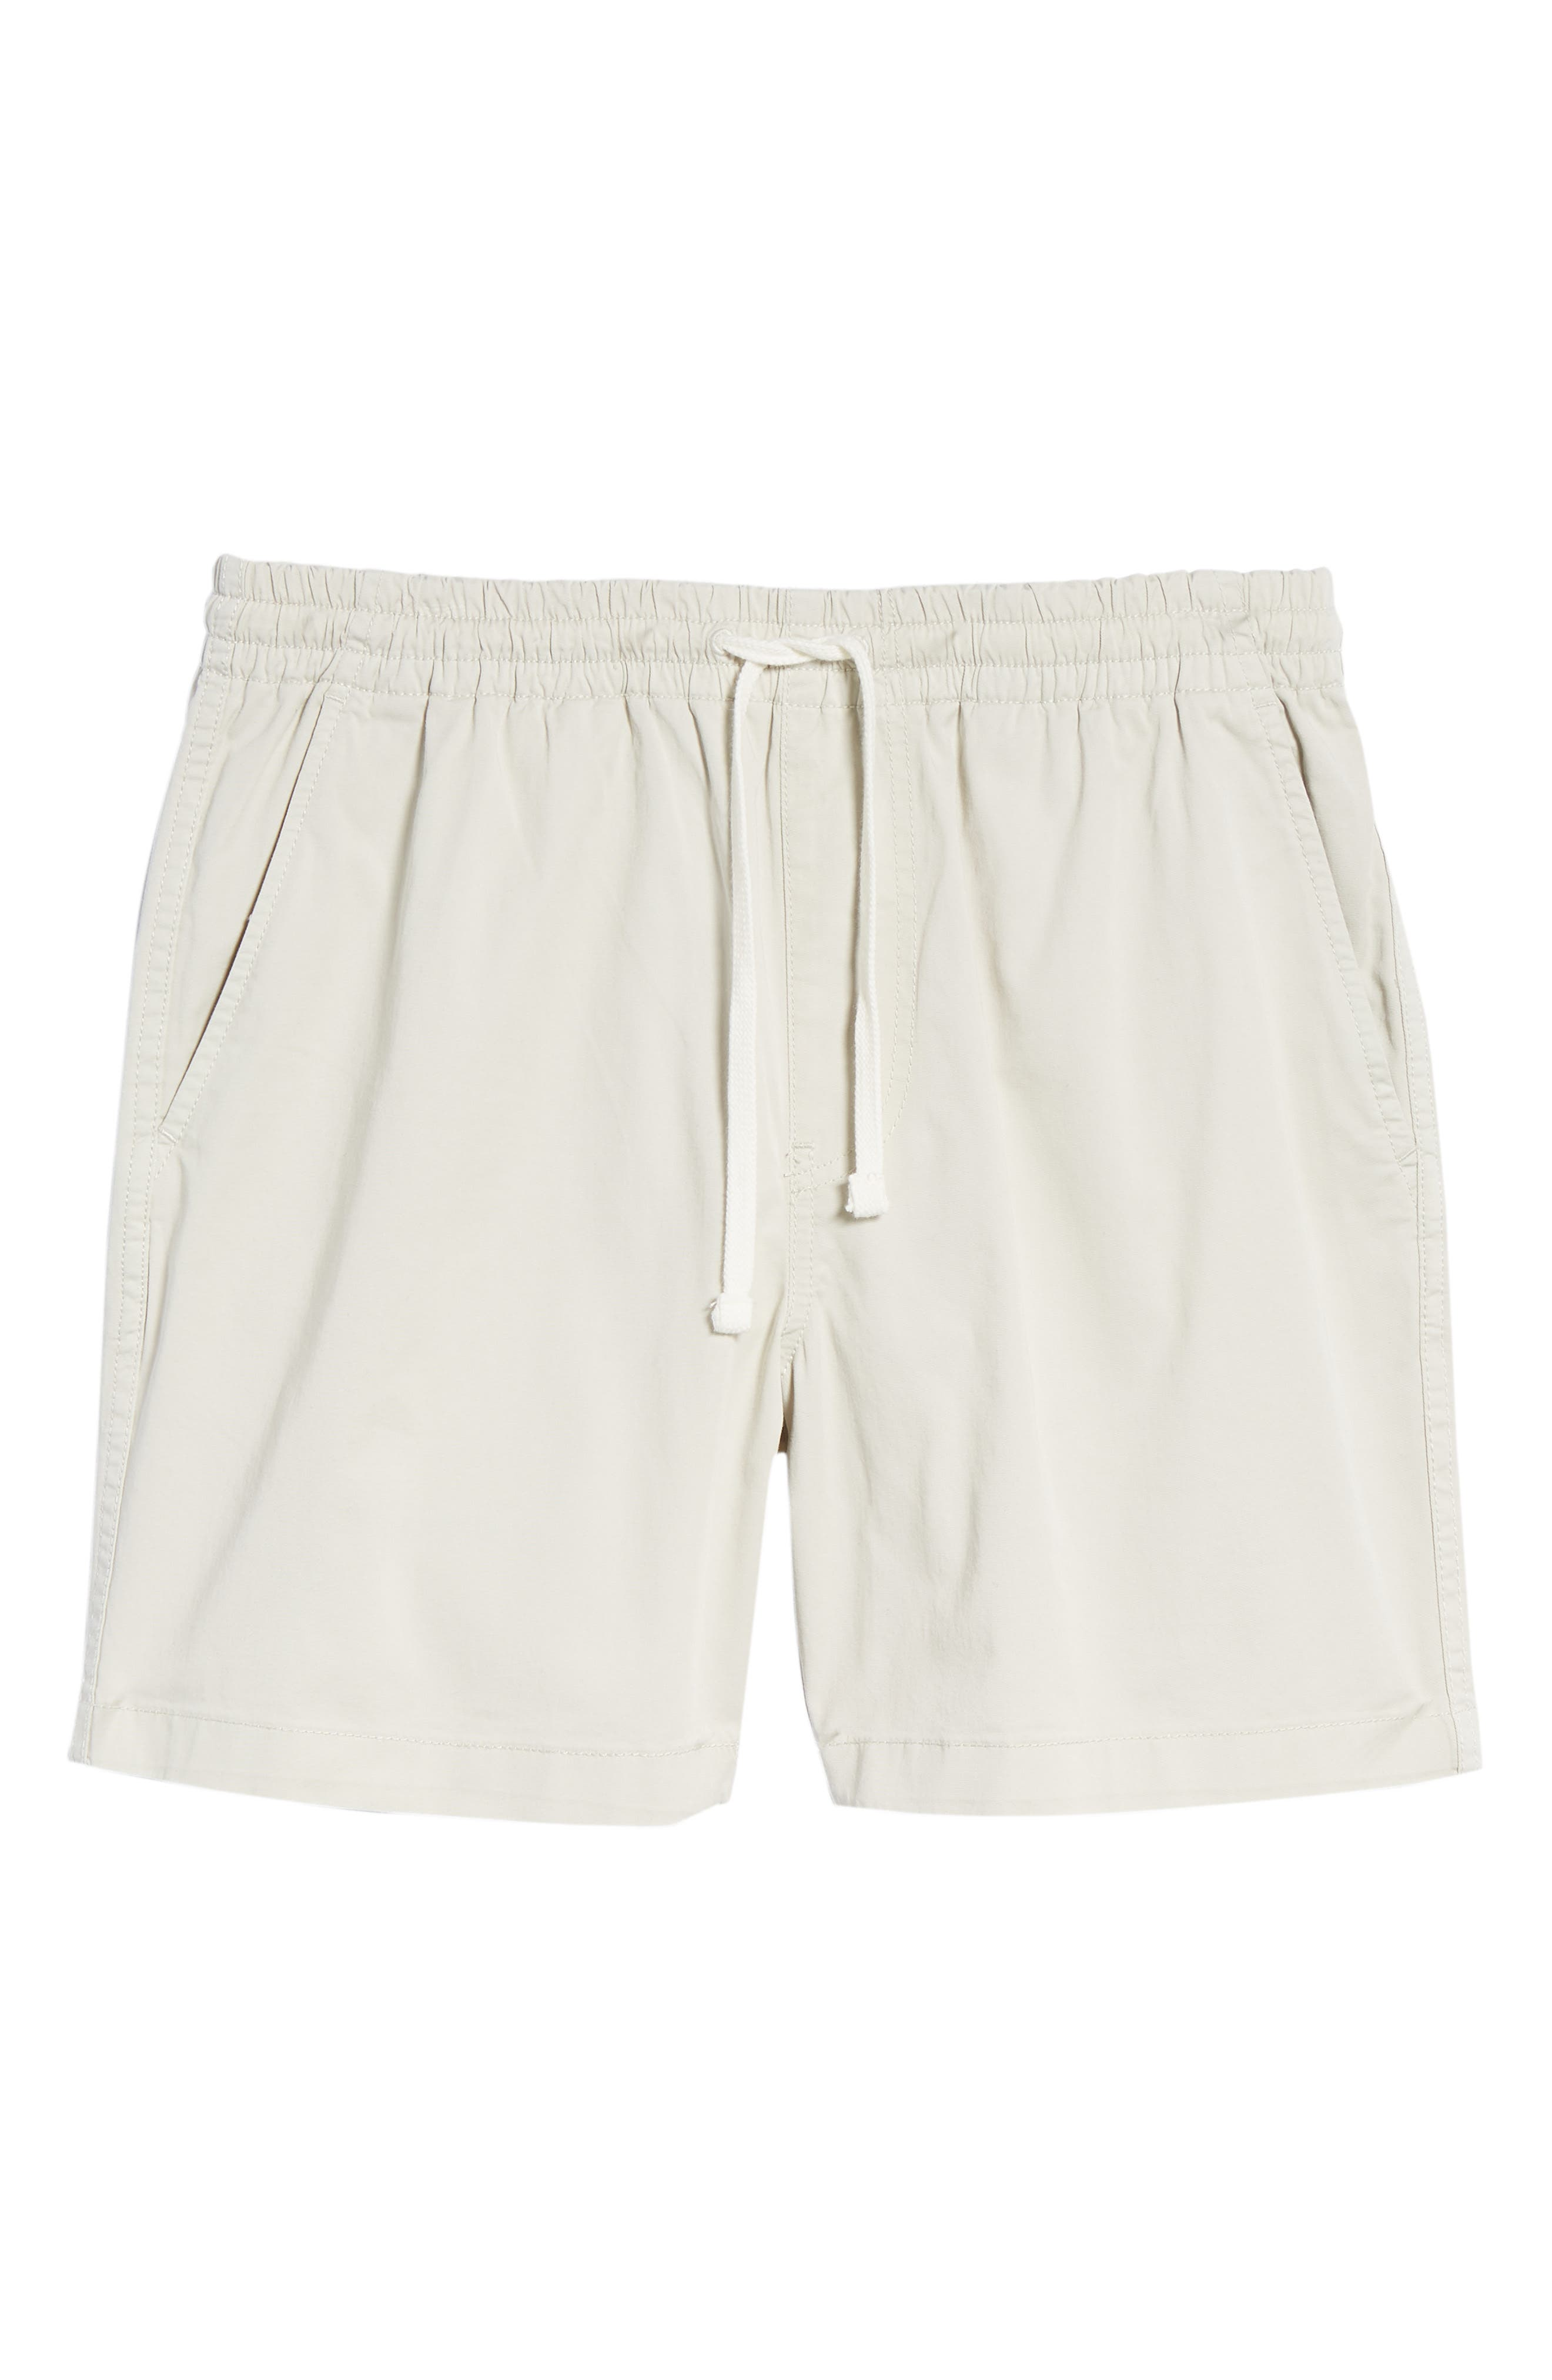 Stretch Chino Dock Shorts,                             Alternate thumbnail 3, color,                             Stone